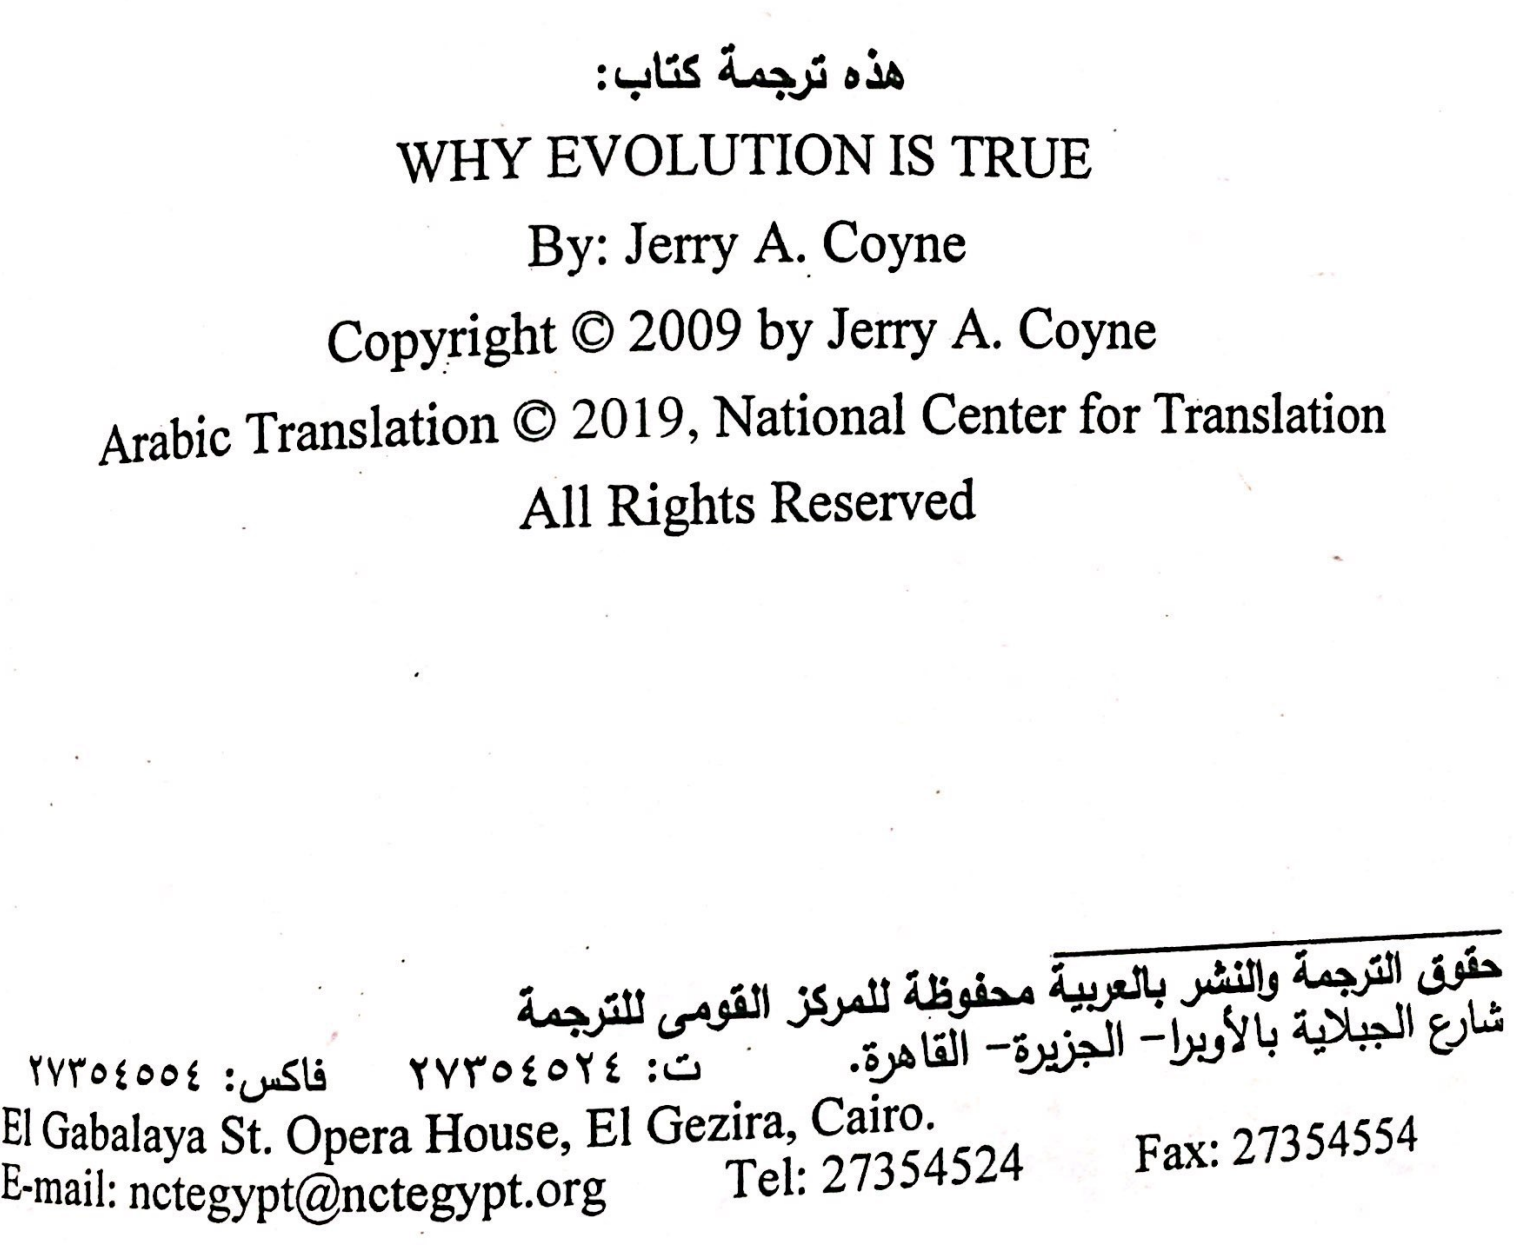 Arabic edition of WEIT now out « Why Evolution Is True